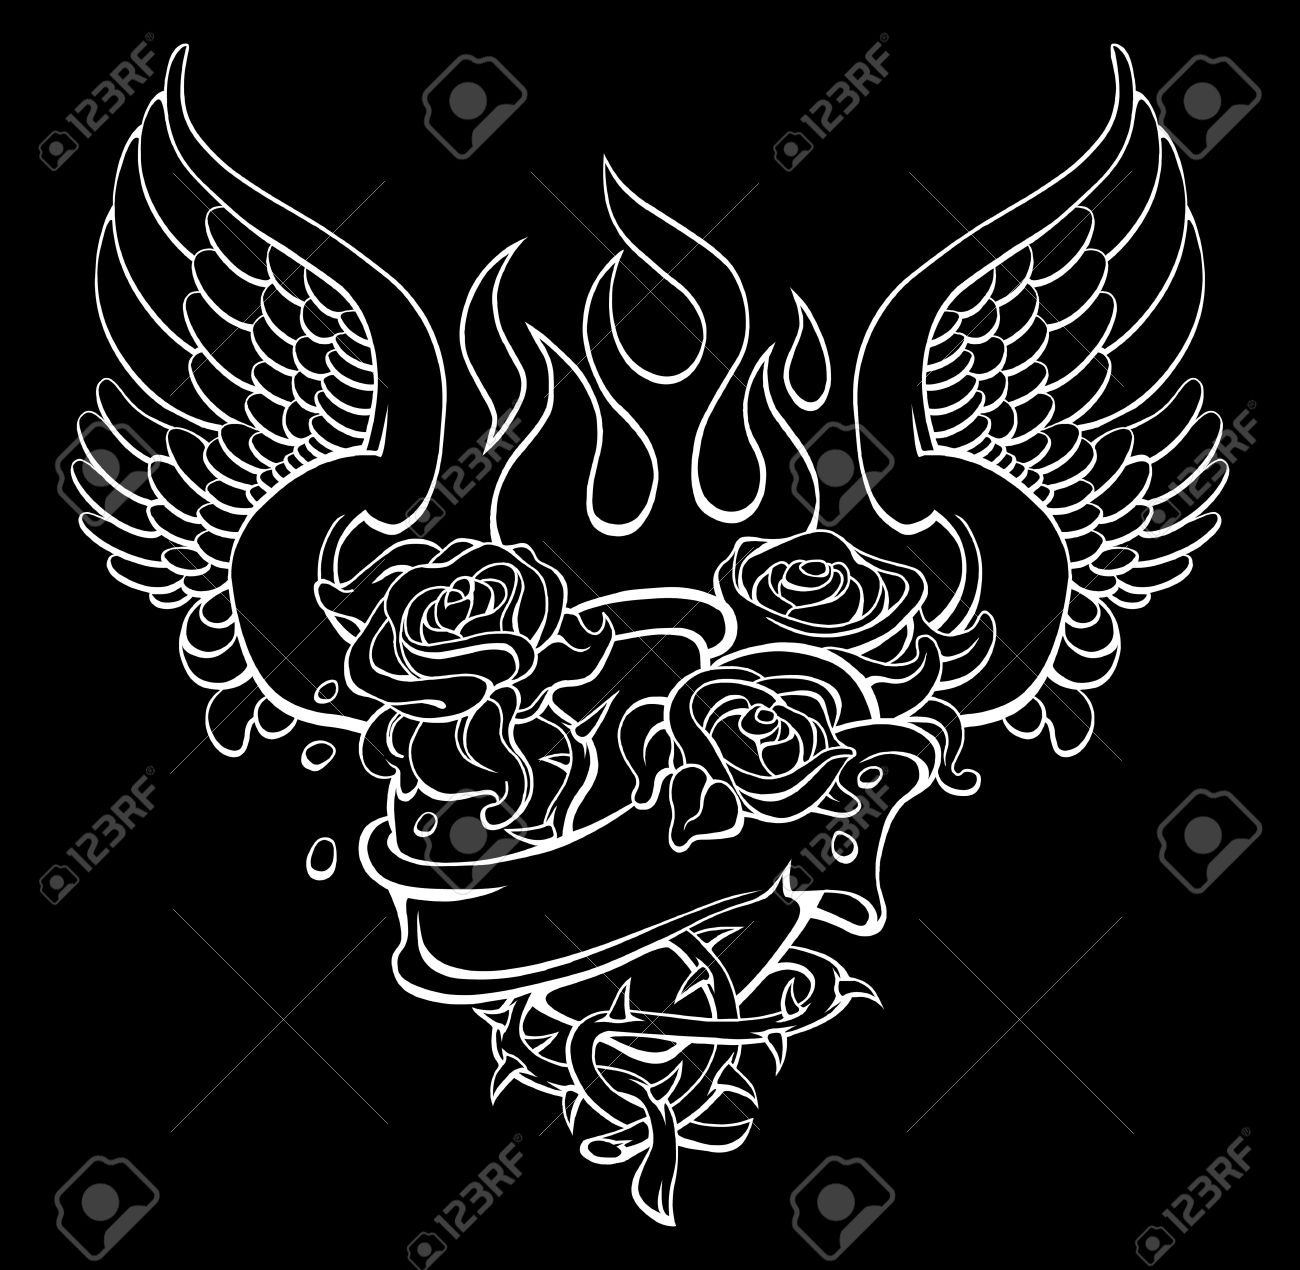 tattoo style design of sacred heart with roses Stock Vector - 12069267